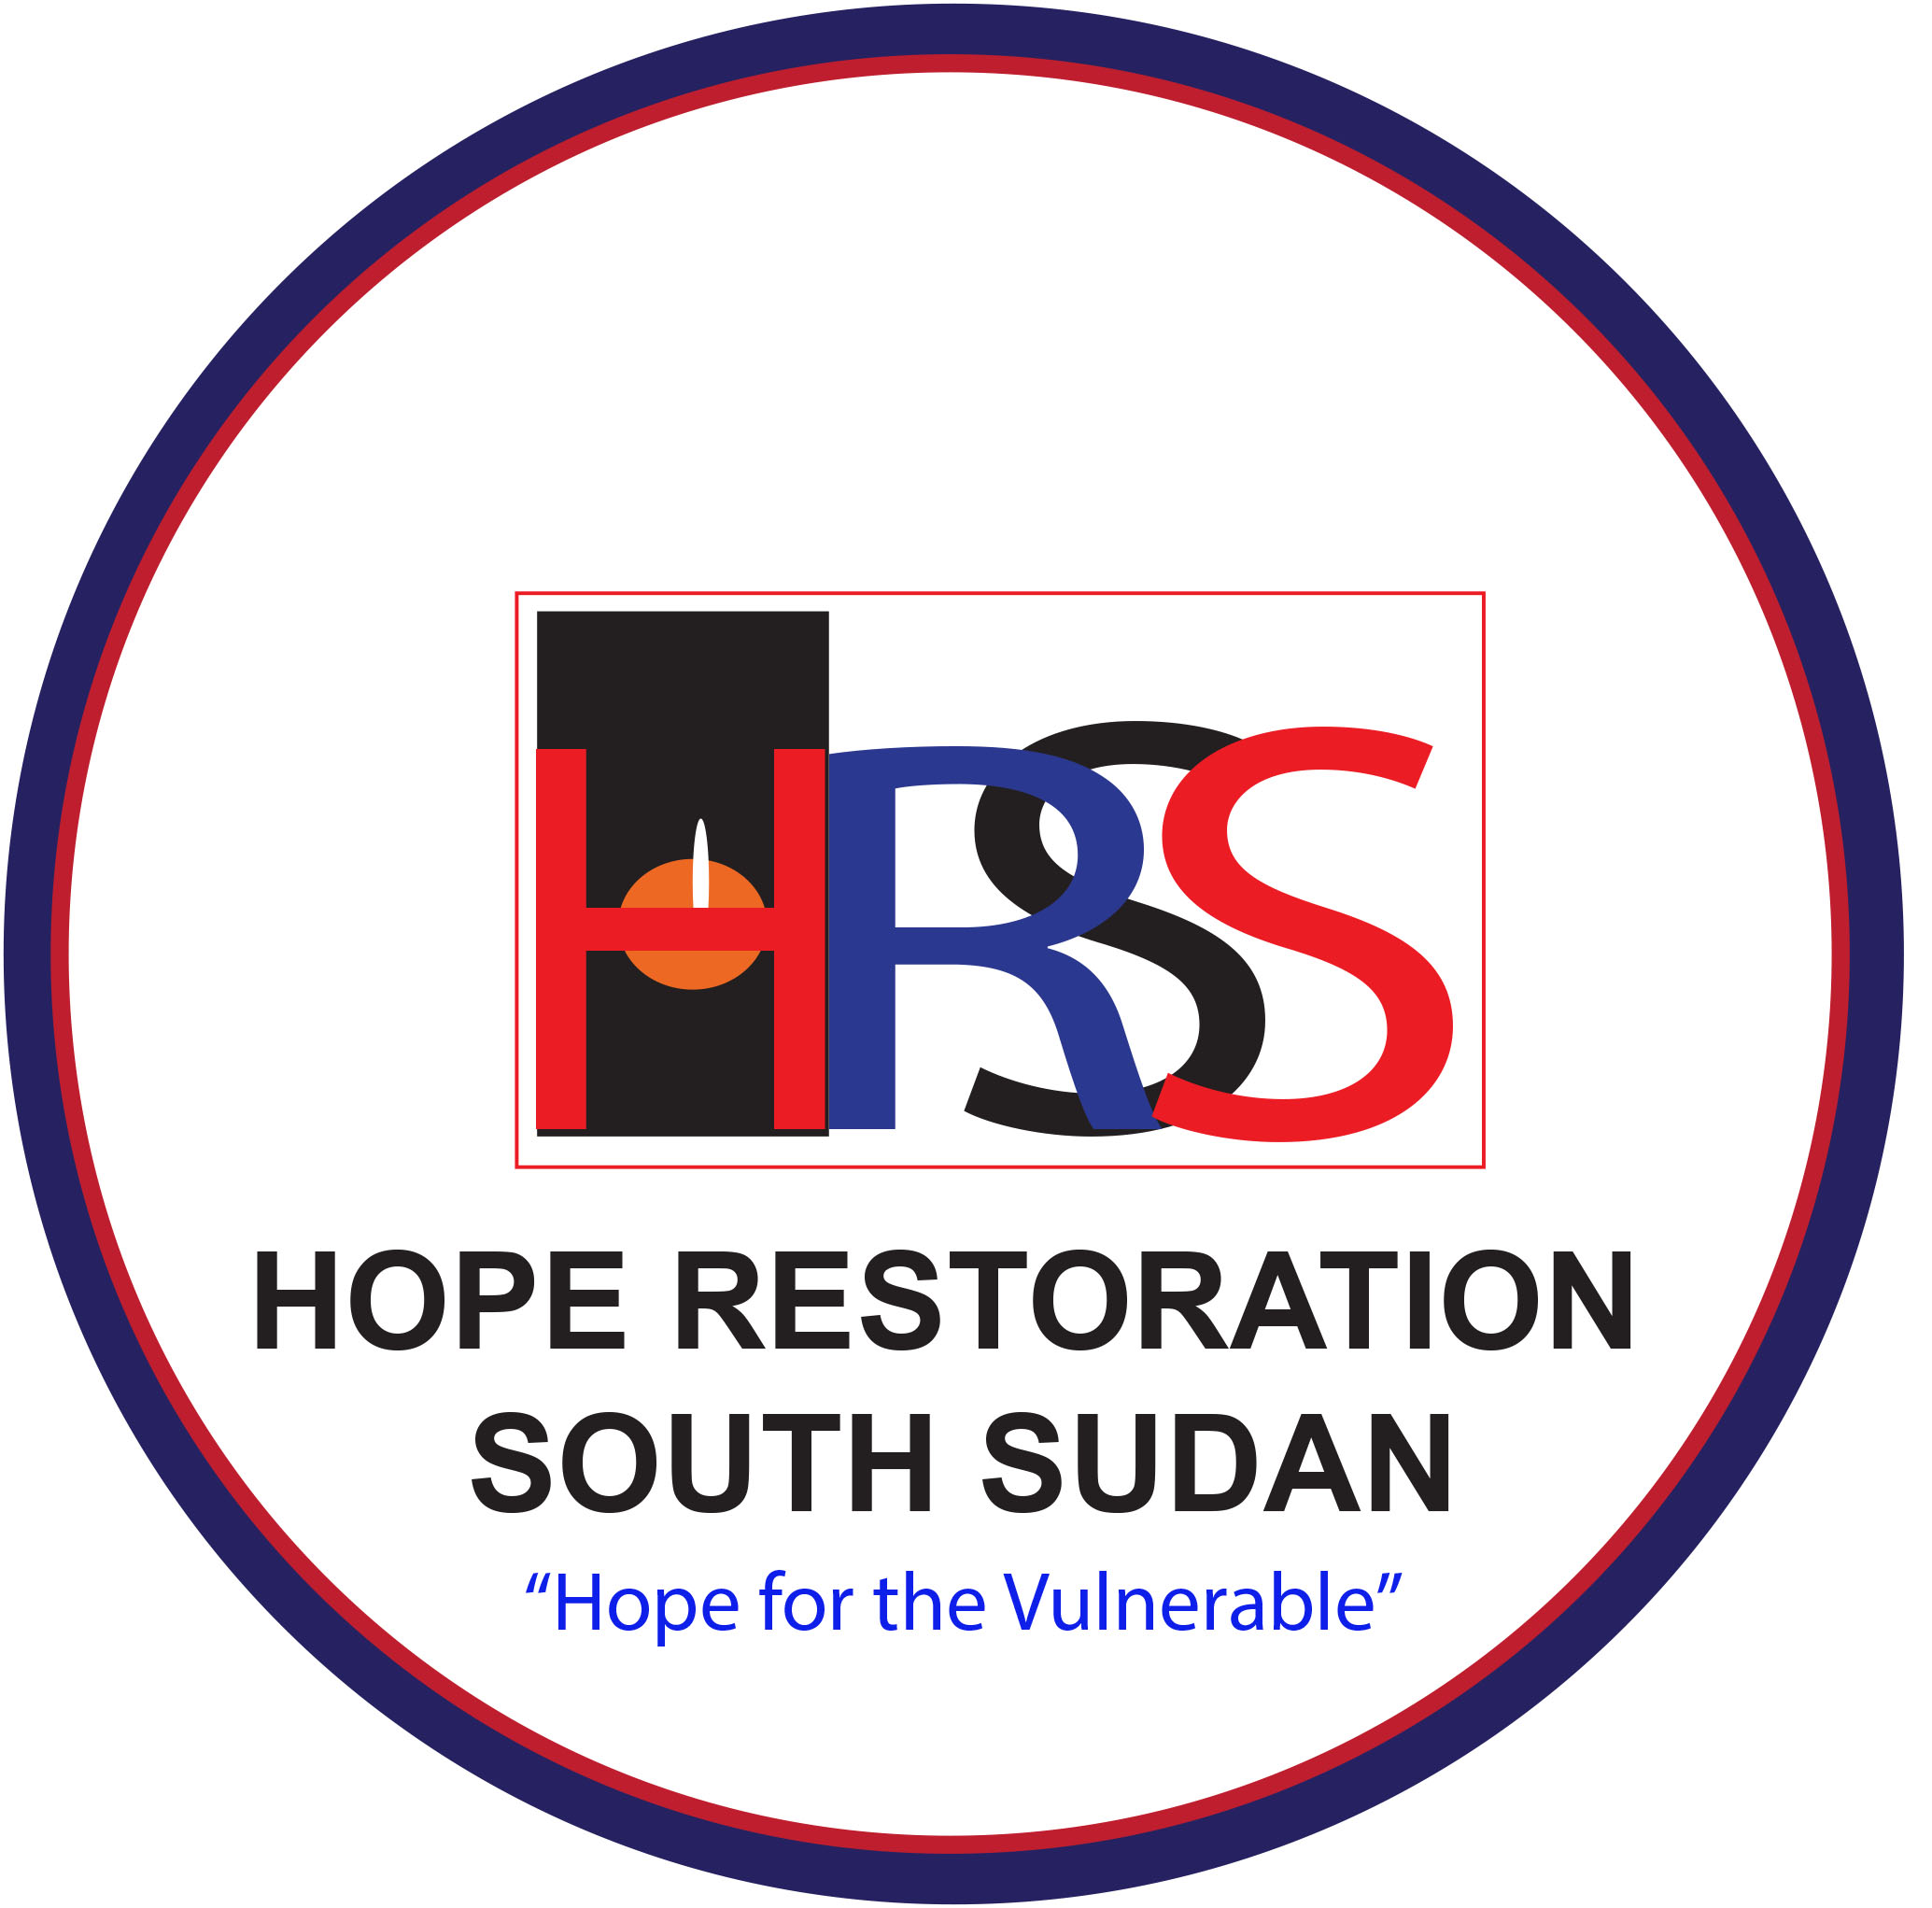 Hope Restoration South Sudan